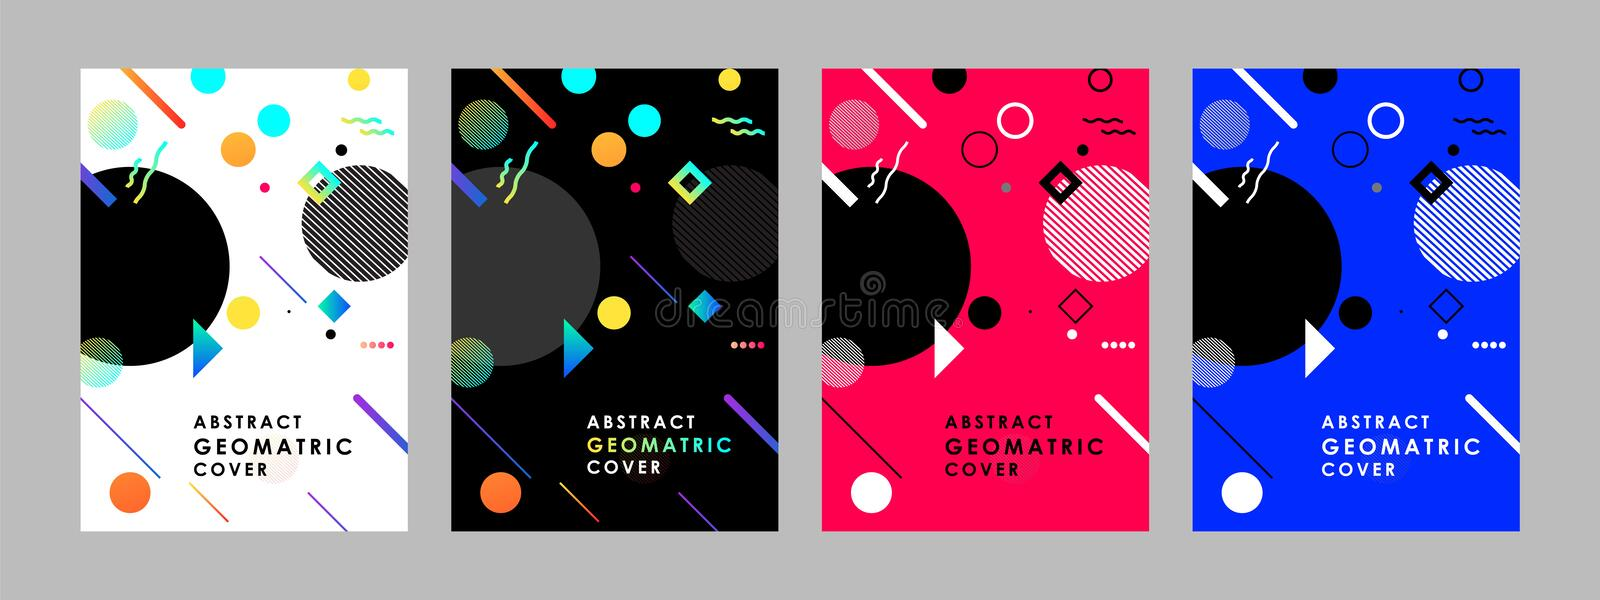 Covers modern abstract design templates set. Minimal geometric shapes compositions for flyer, banner, brochure and poster. Eps10 v stock illustration